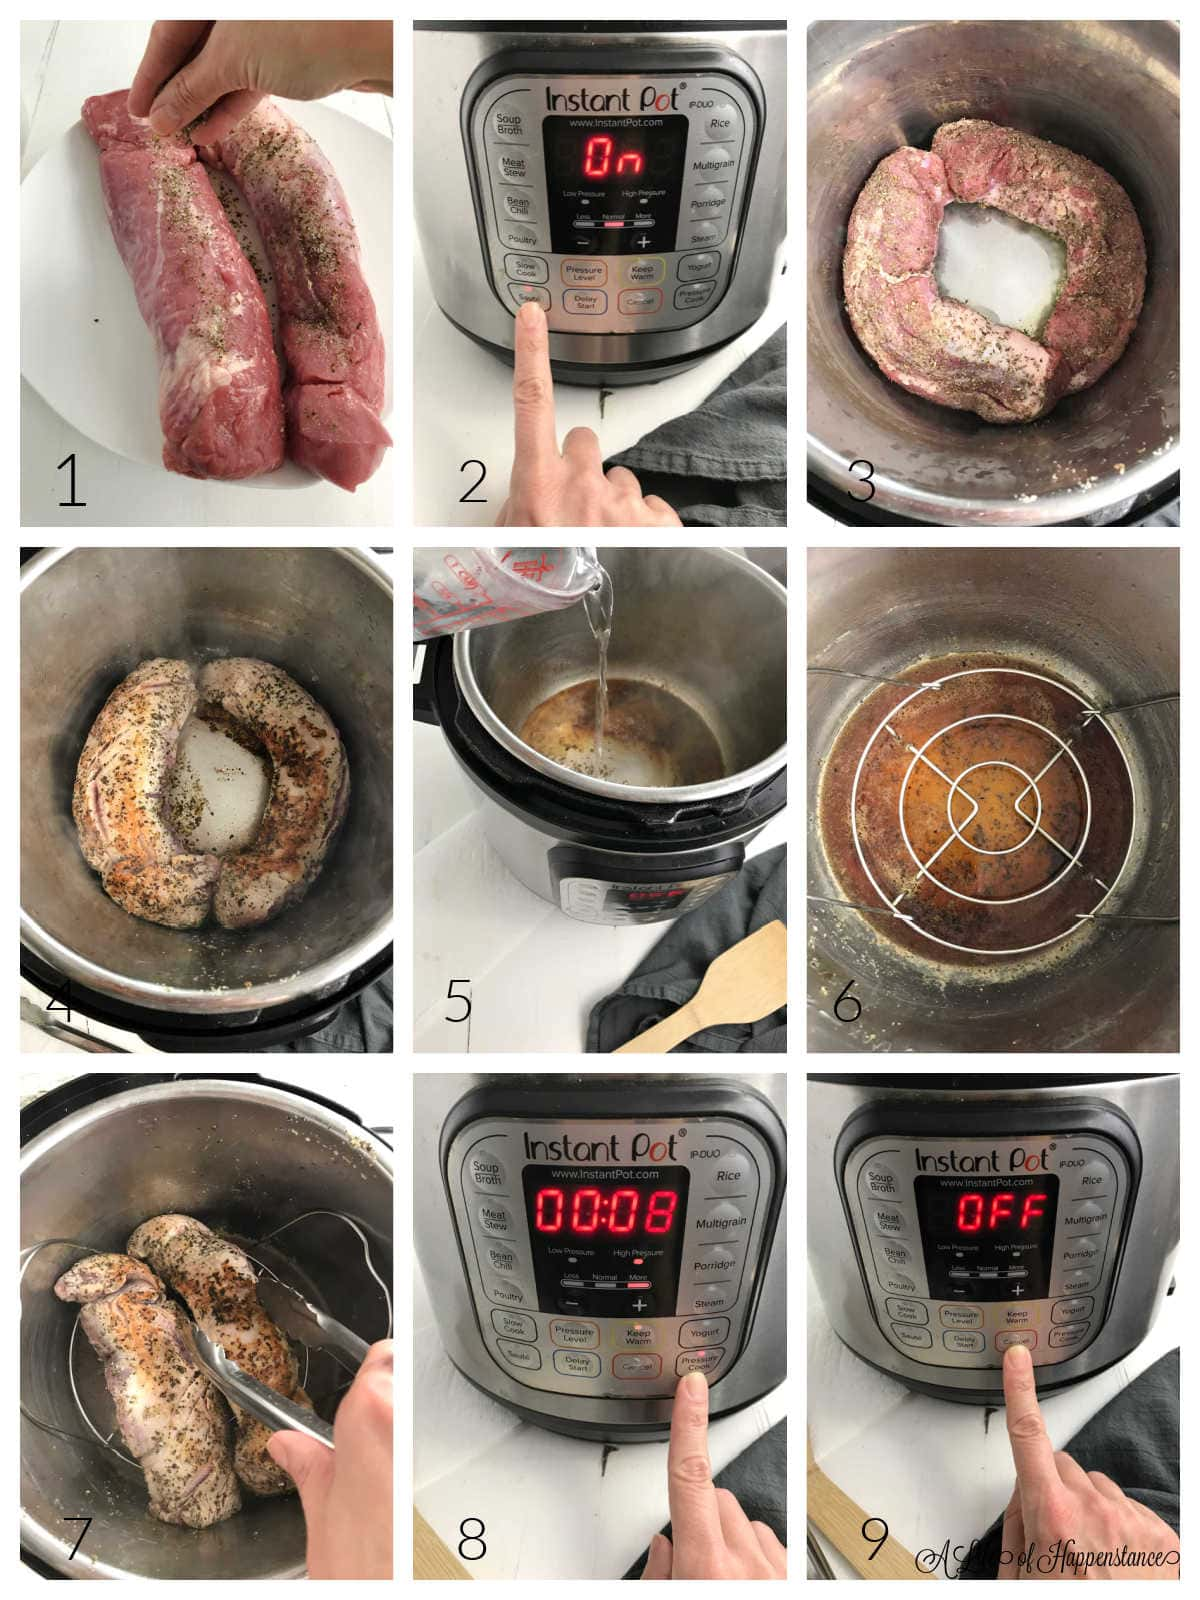 A nine photo collage showing how to make the berry pork tenderloin. Photo 1; sprinkling seasoning on the pork. Photo 2; pressing SAUTE button on Instant Pot. Photo 3; the tenderloins being seared. Photo 4; the other side of the tenderloins being seared. Photo 5; pouring water into the pot. Photo 6; the trivet in the pot. Photo 7; placing the pork tenderloins on the trivet. Photo 8; setting the Instant Pot to pressure cook for 8 minutes. Photo 9; pressing the CANCEL button the Instant Pot.